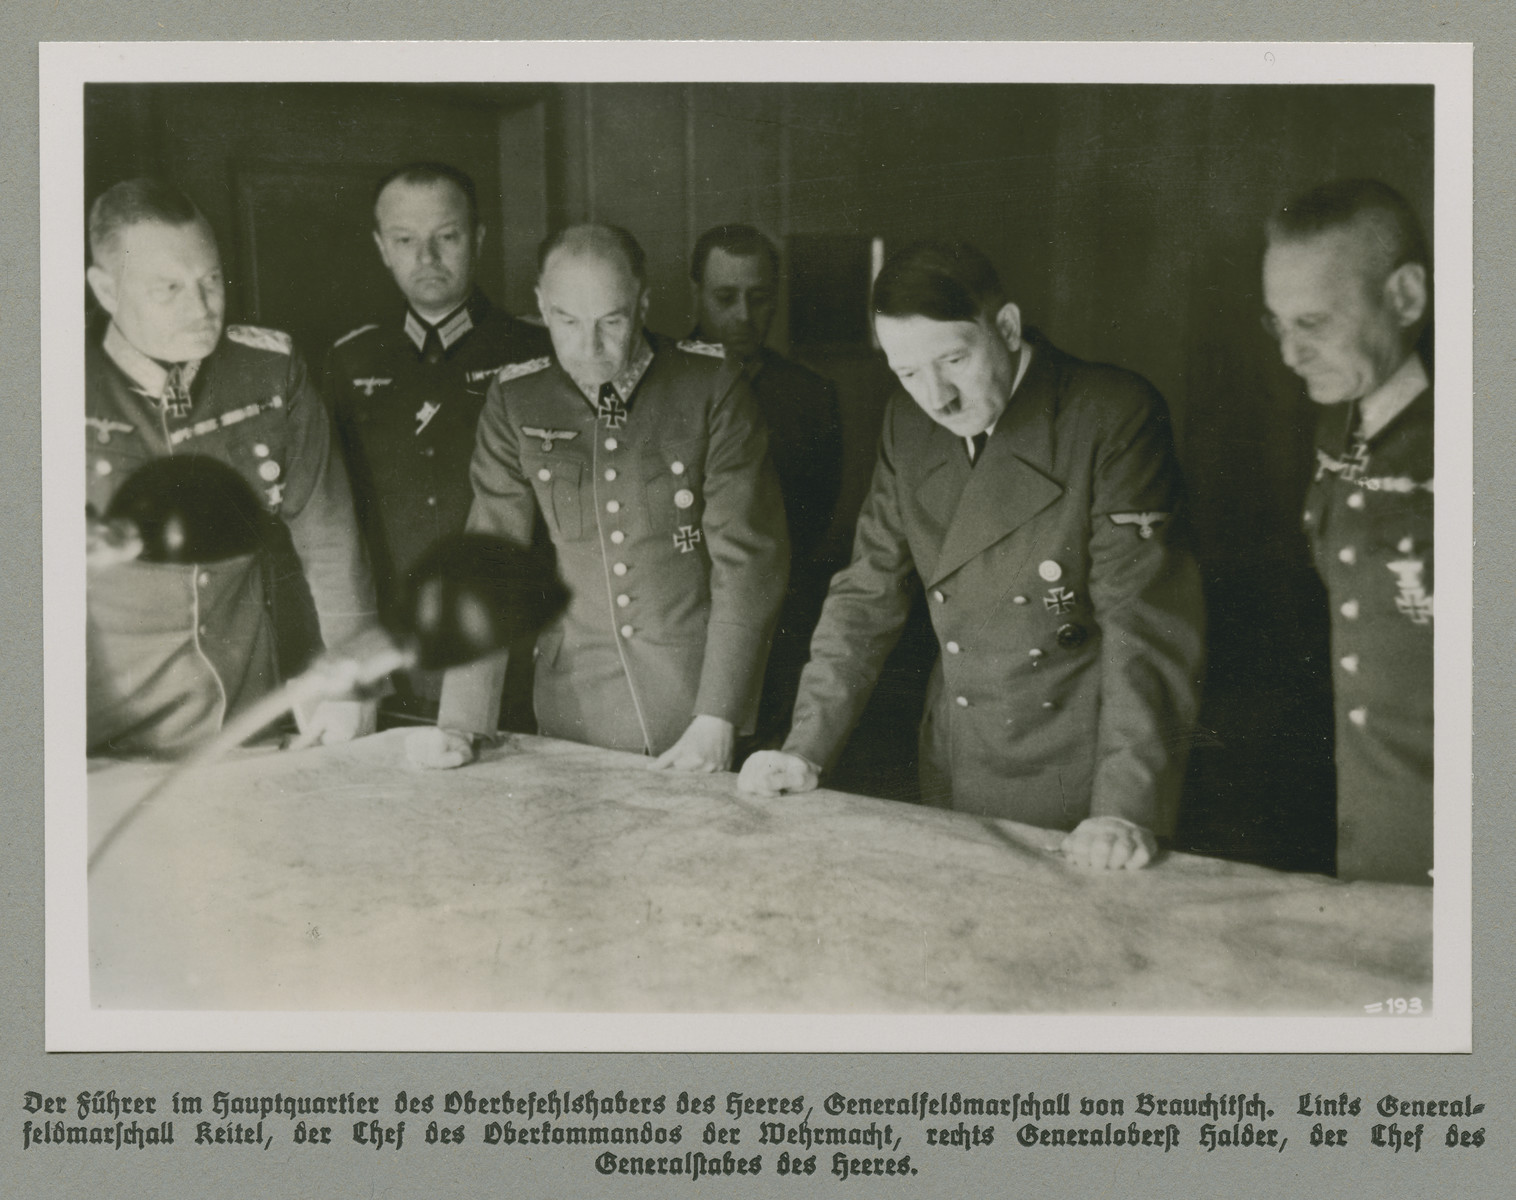 Adolf Hitler reviews military plans with his High Command.  The original caption reads: The Führer in the headquarters of Field Marshal von Brauchitsch, Commander-in-Chief of the Amred Forces.  Field Marshal Keitel, Chief of the High Command is on the left, and Colonel General Halder, Chief of General Military Staff is standing at right.